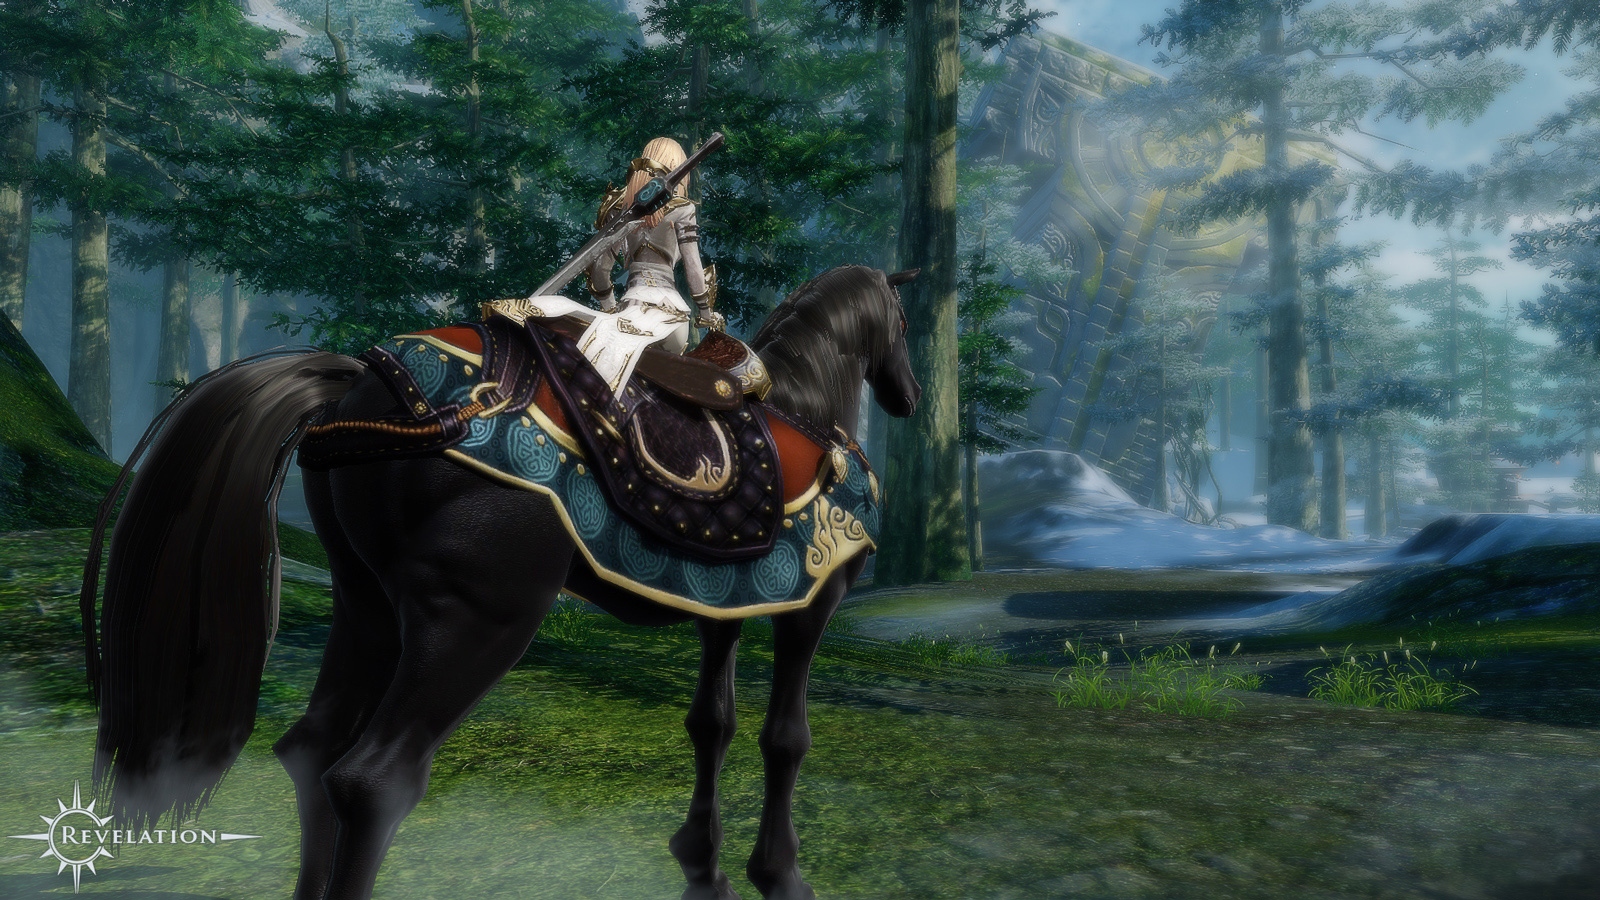 Revelation Online Gameplay Screenshot 1